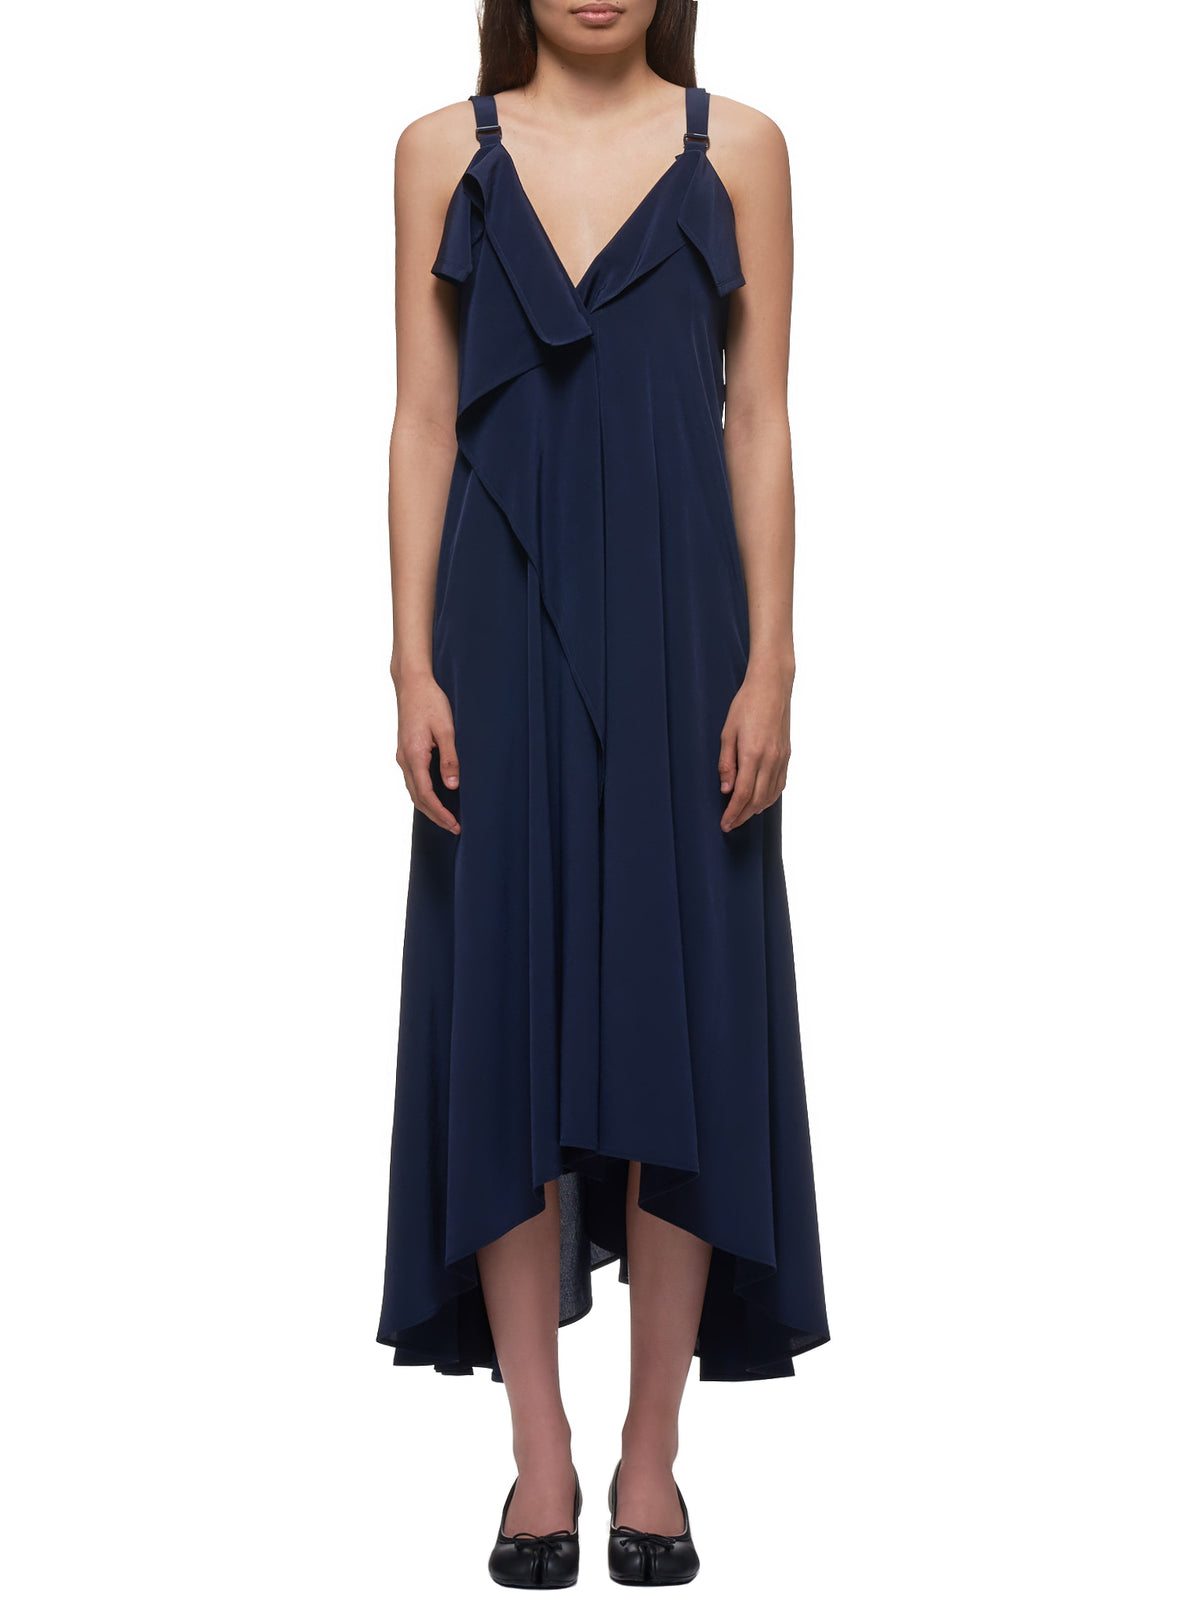 Asymmetrical Ruffled Sundress (YN-D32-501-1-NAVY)